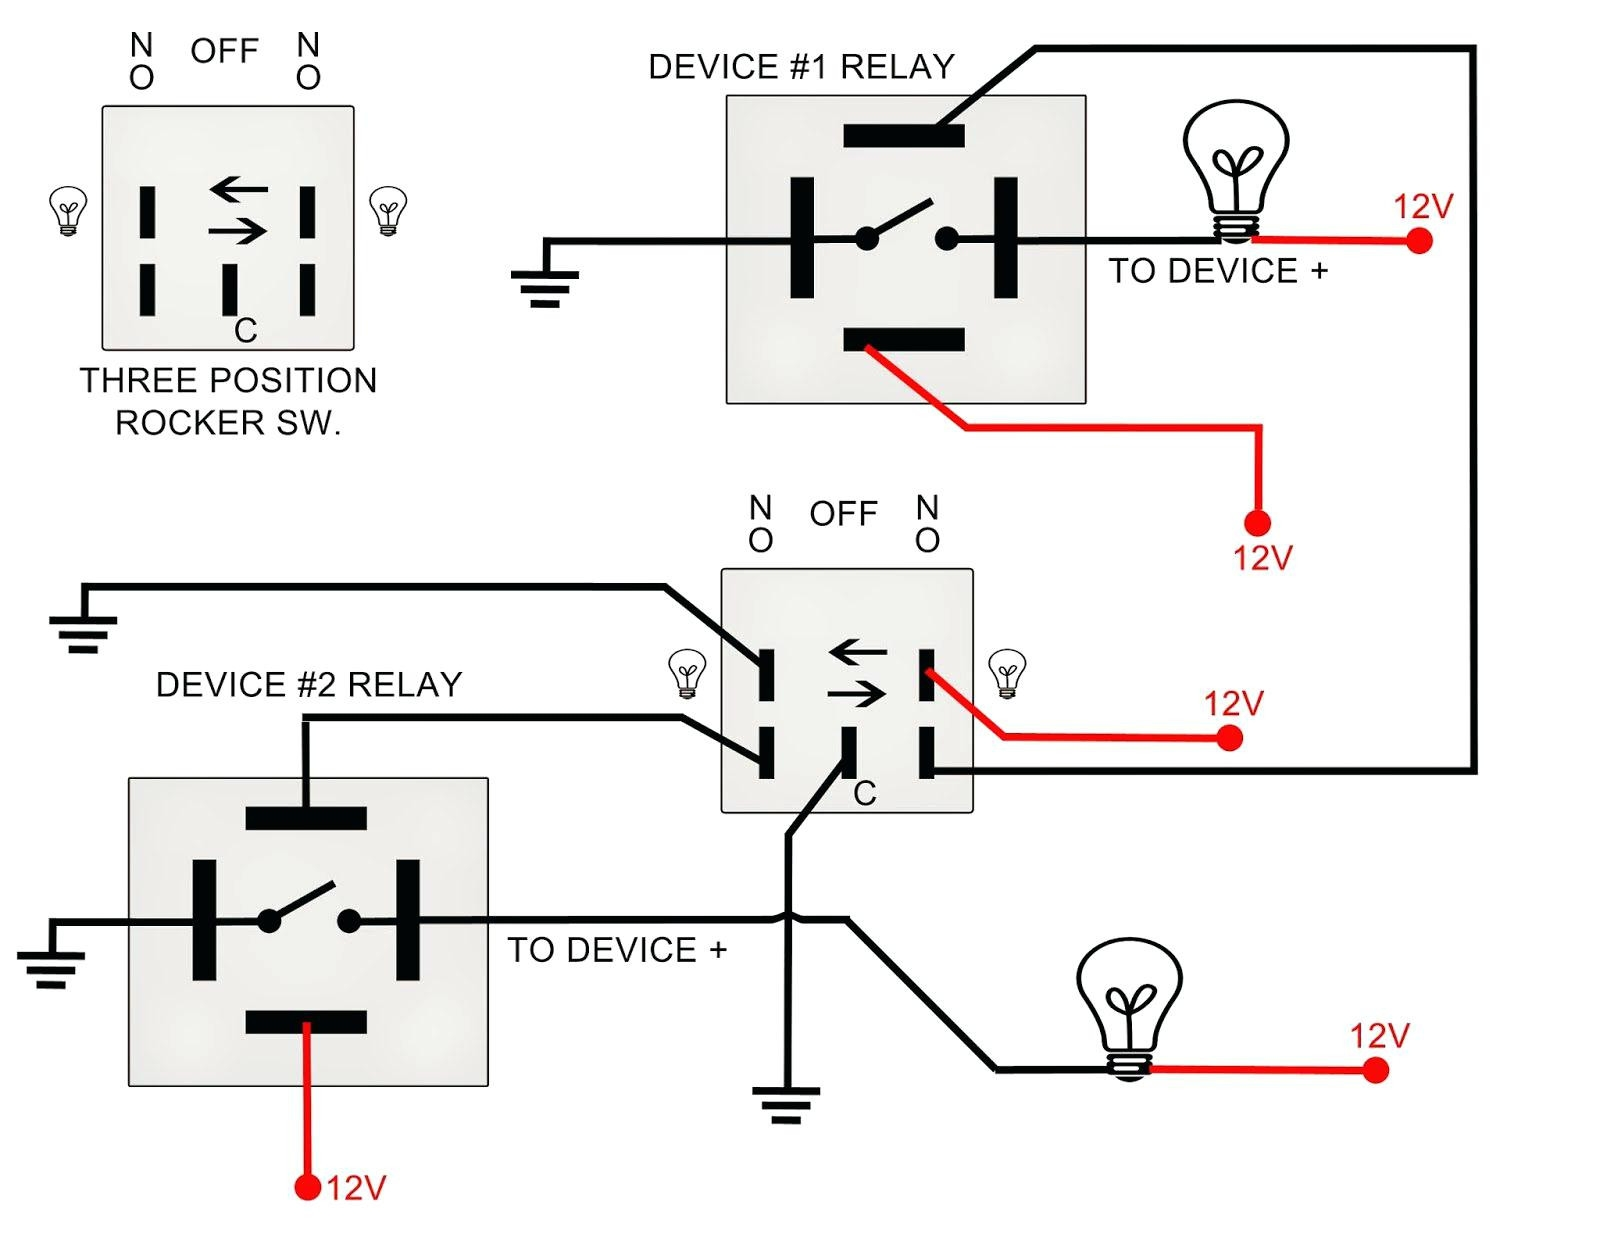 120 volt coil relay schematic